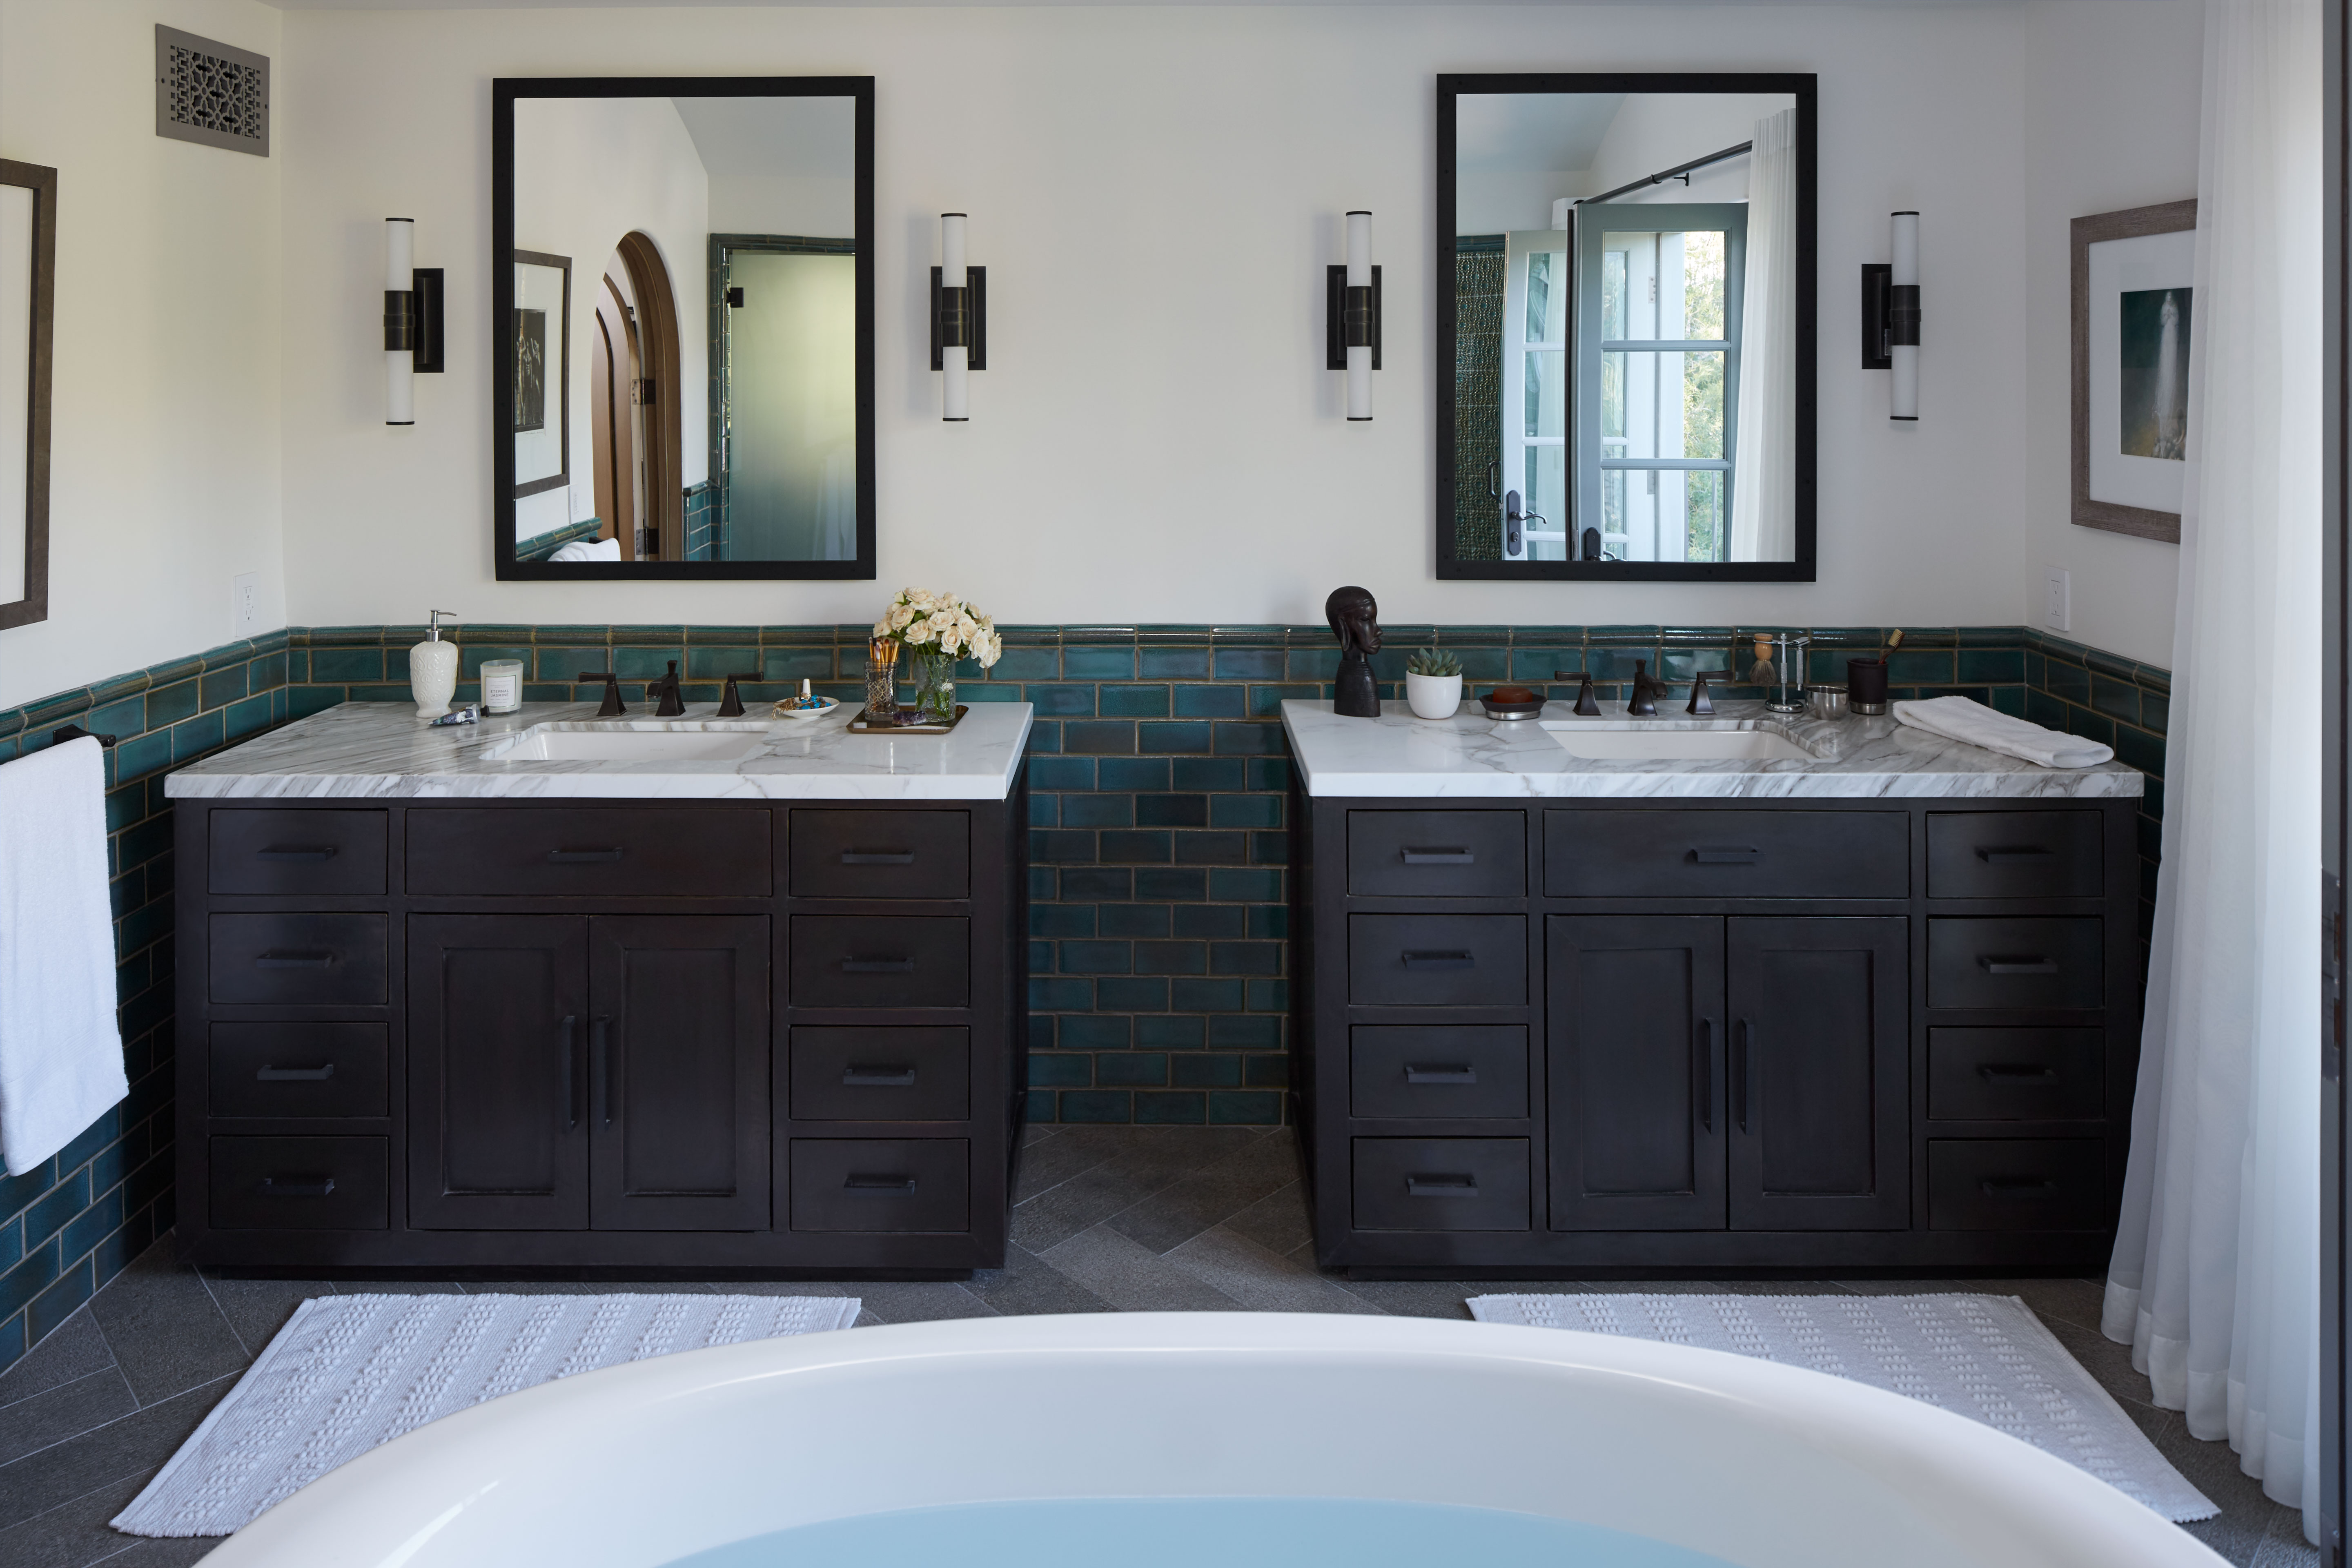 Memoirs Faucet    Ladena Sink    Memoirs Towel Bar    Symmetrical styling spaces complete the master bath with storage-rich vanities and framed medicine cabinets. Dark wood and faucet finishes complement the home's Spanish style.